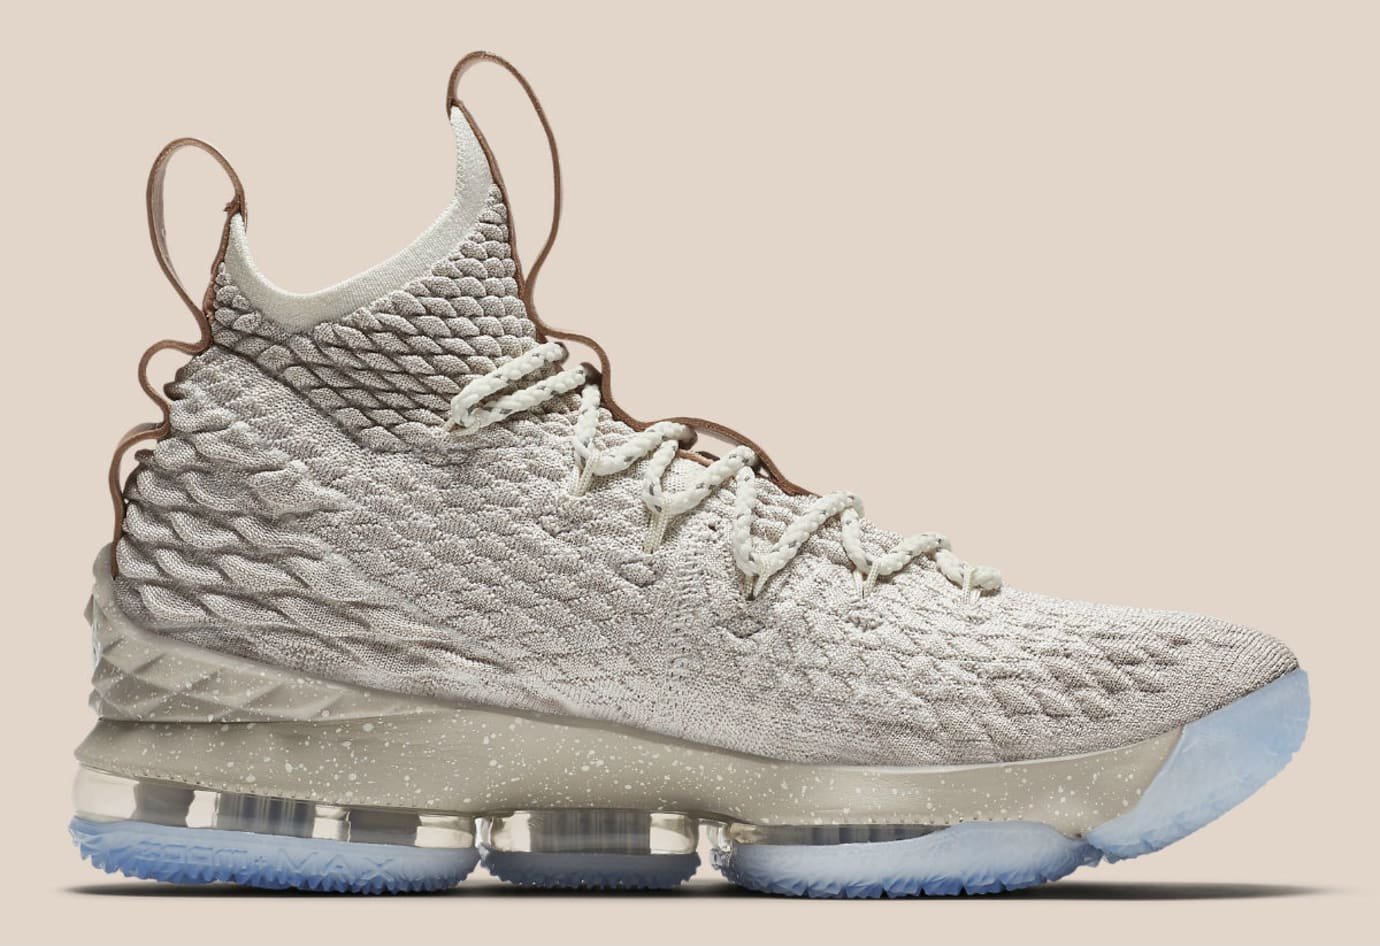 Nike LeBron 15 Ghost Release Date Medial 897649-200